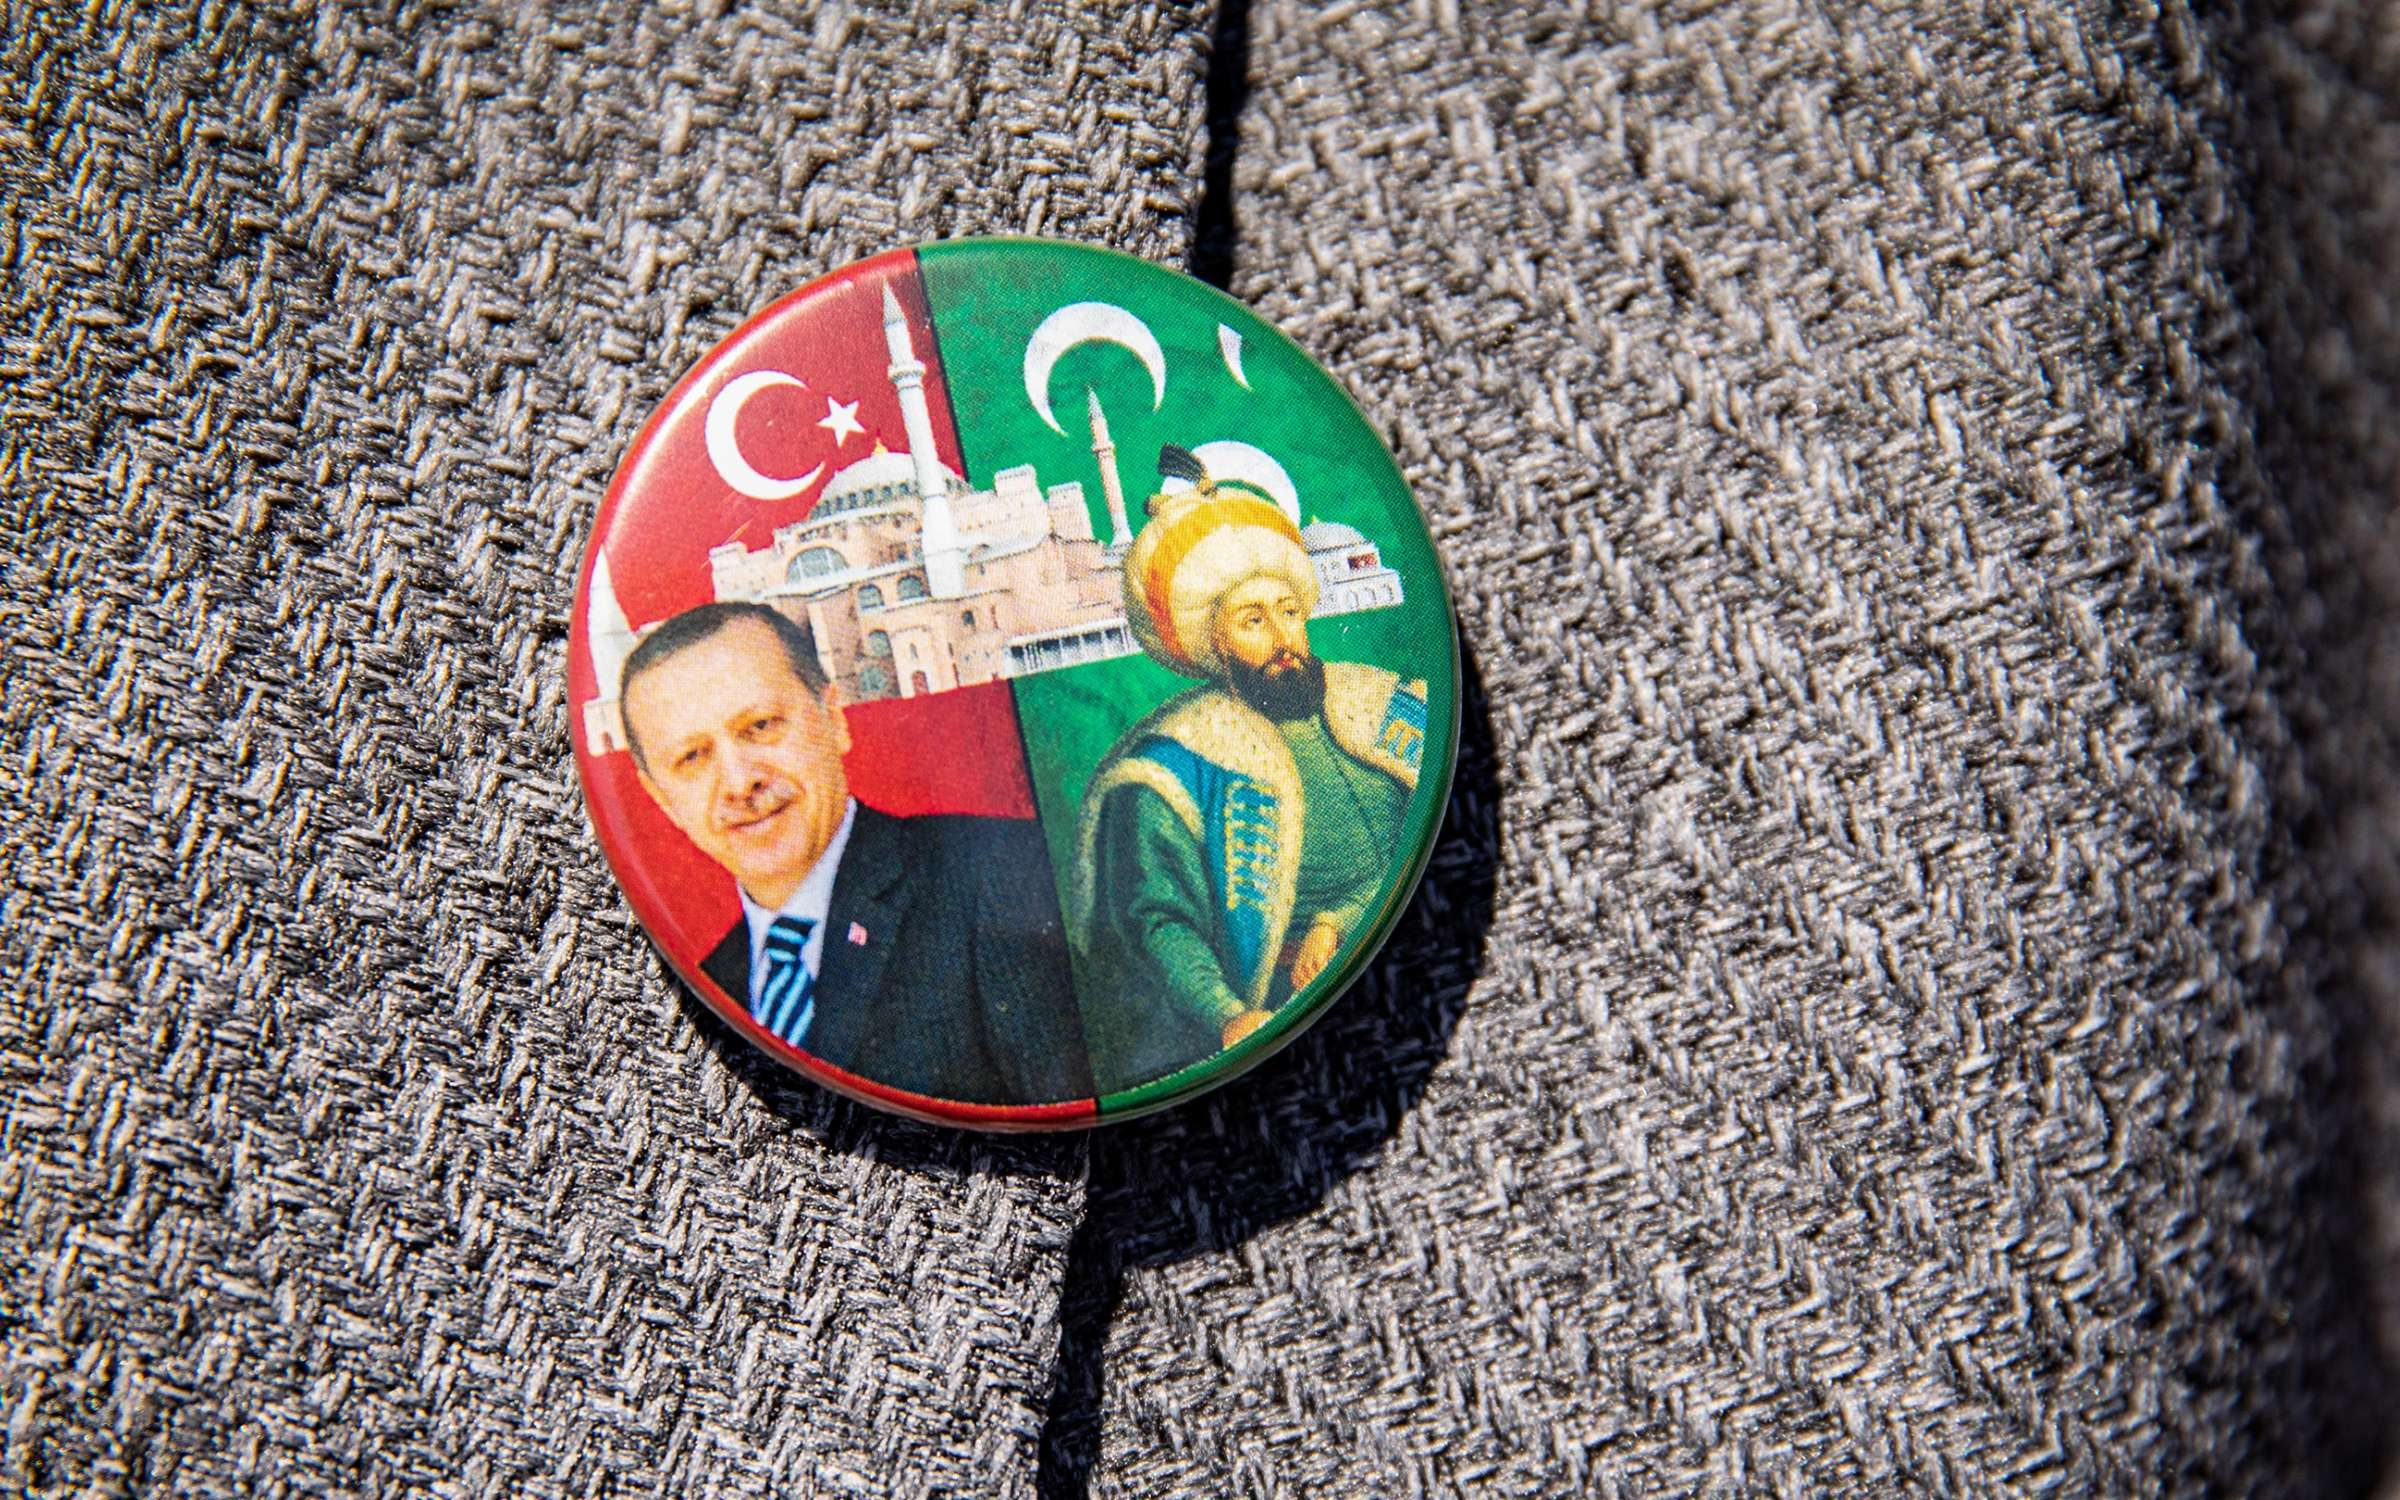 An attendee wears a badge depicting Recep Tayyip Erdogan, Turkey's president, left, during the opening ceremony to mark the first day of prayers at the Hagia Sophia mosque, in the Sultanahmet district of Istanbul, Turkey, on Friday, July 24, 2020. Turkey's President Recep Tayyip Erdogan is holding the first Islamic prayer at the iconic Hagia Sophia in nearly a century, a calculated move to boost the embattled Turkish presidents popularity at home and in the Muslim world. Photographer: Kerem Uzel/Bloomberg via Getty Images